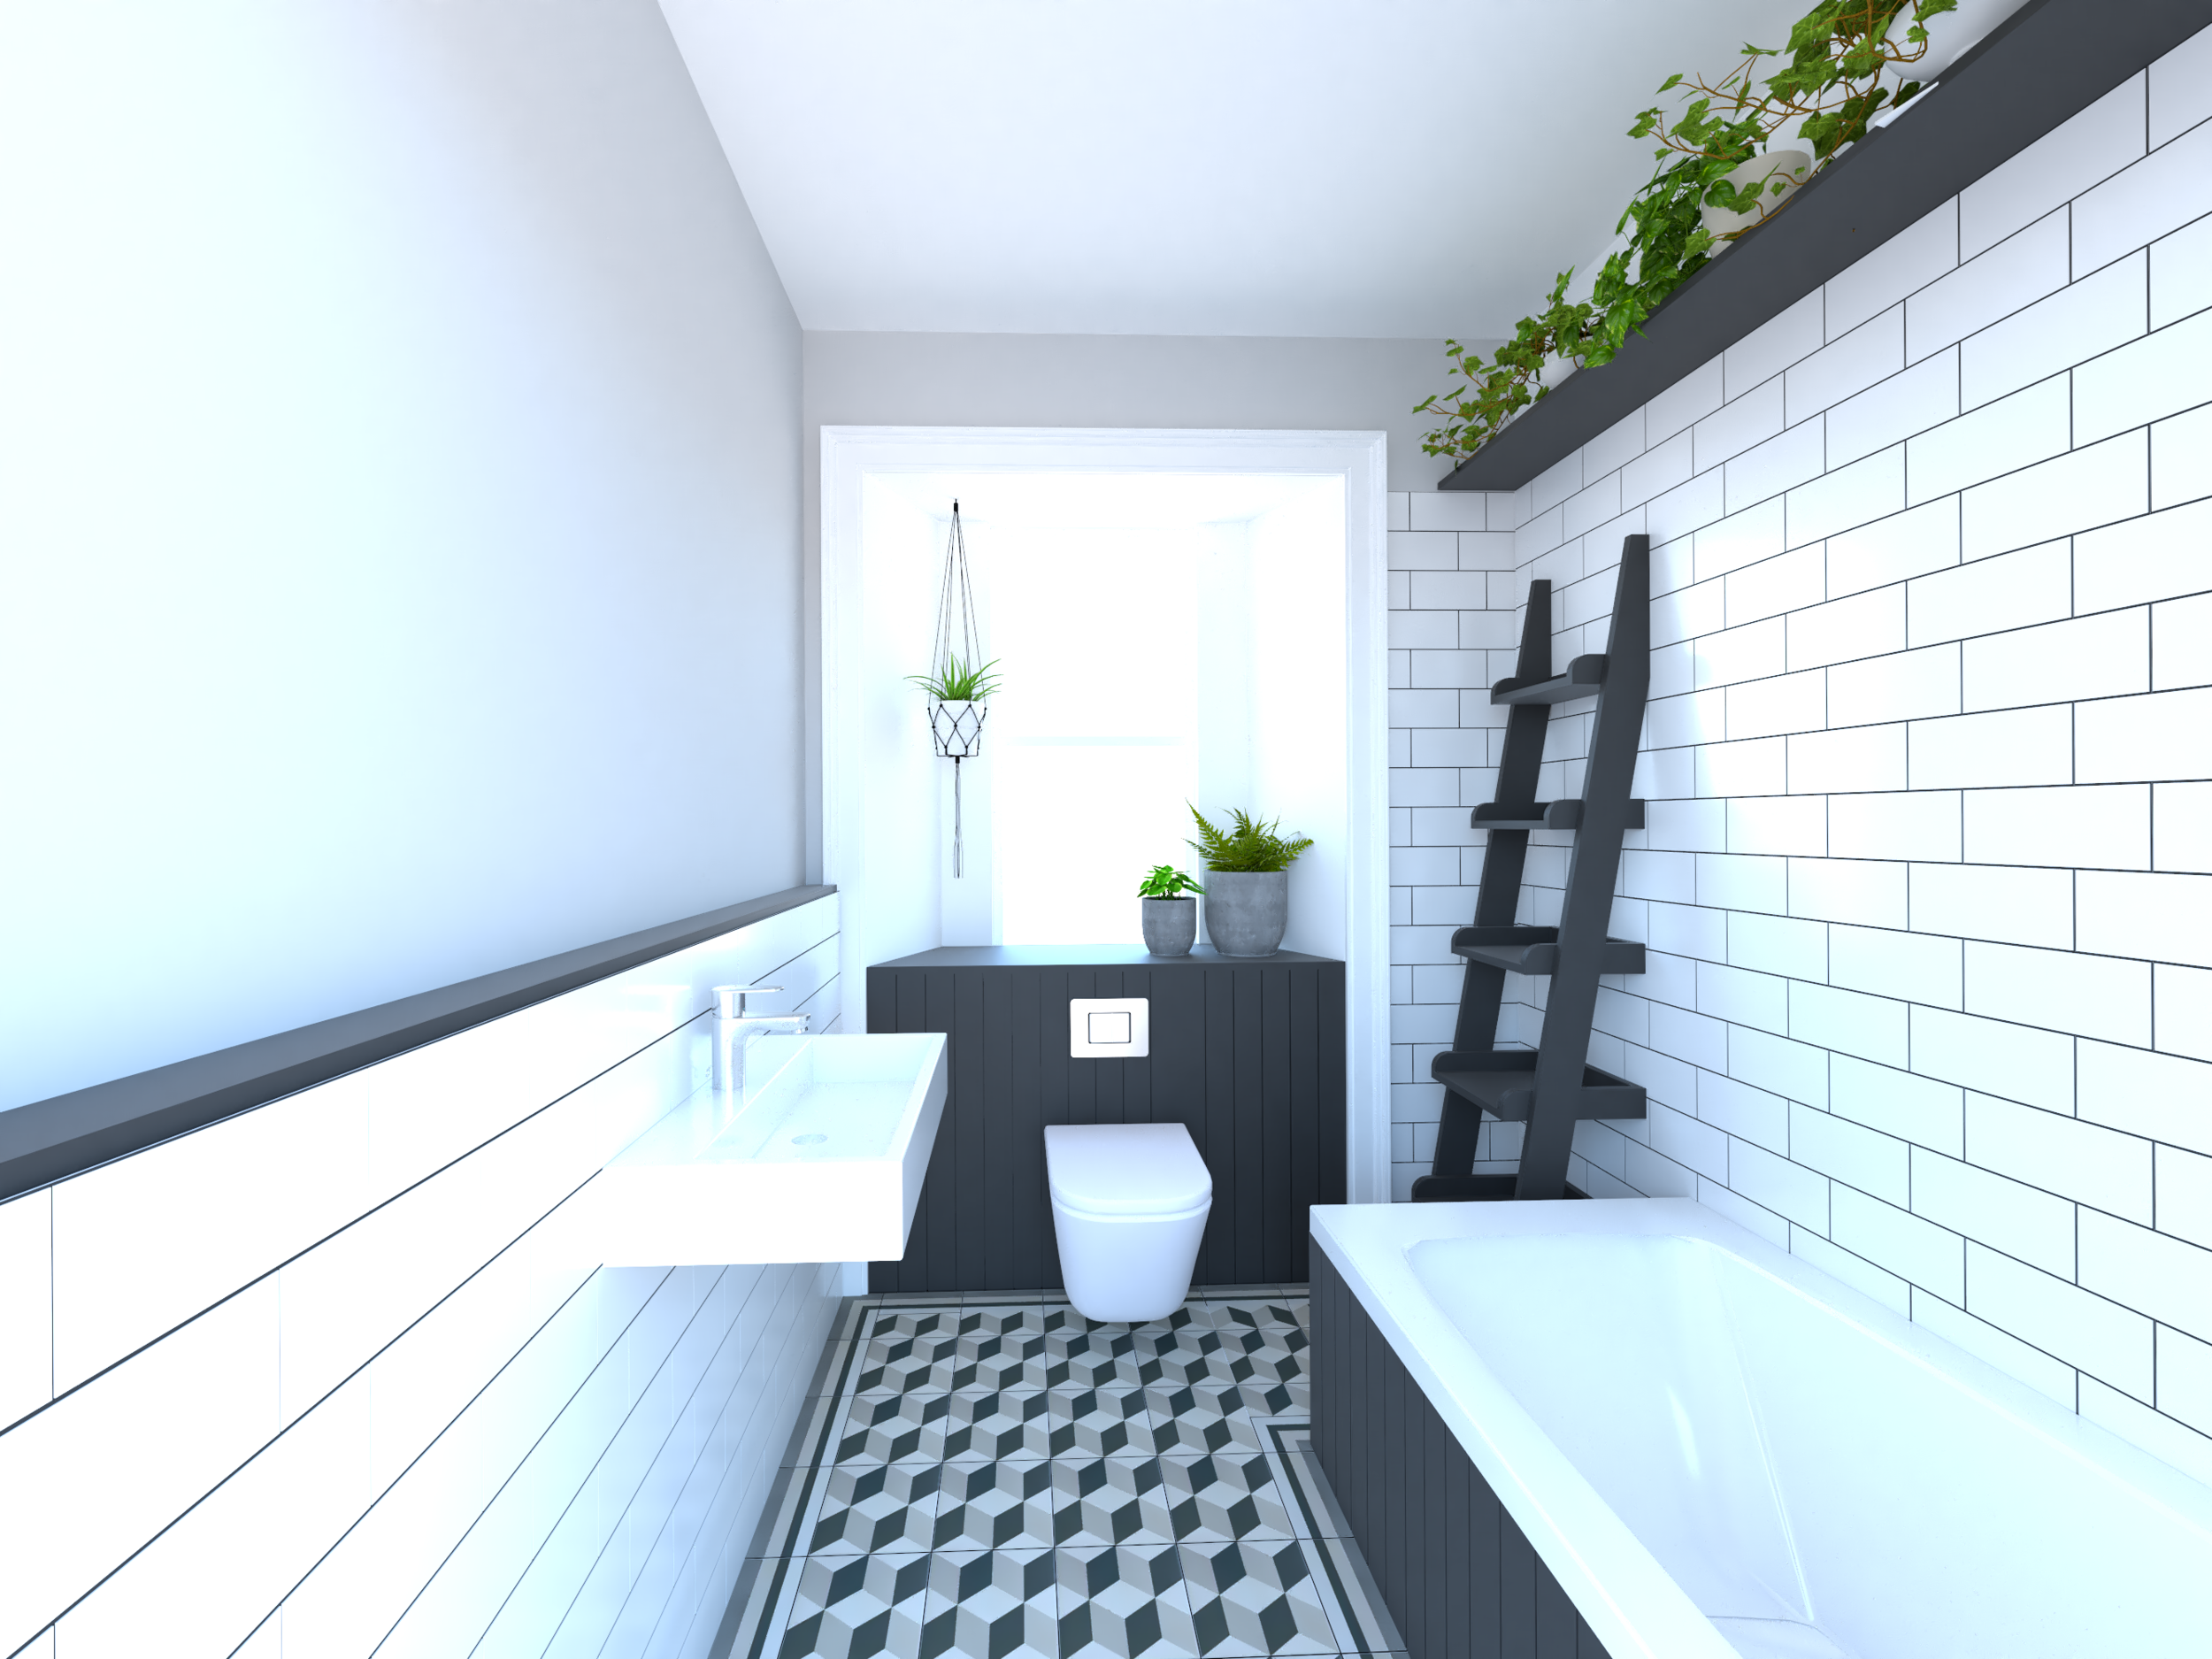 The Proposed bathroom with tiles from Walls and Floors and Sanitaryware from Ideal Standard and Grohe.